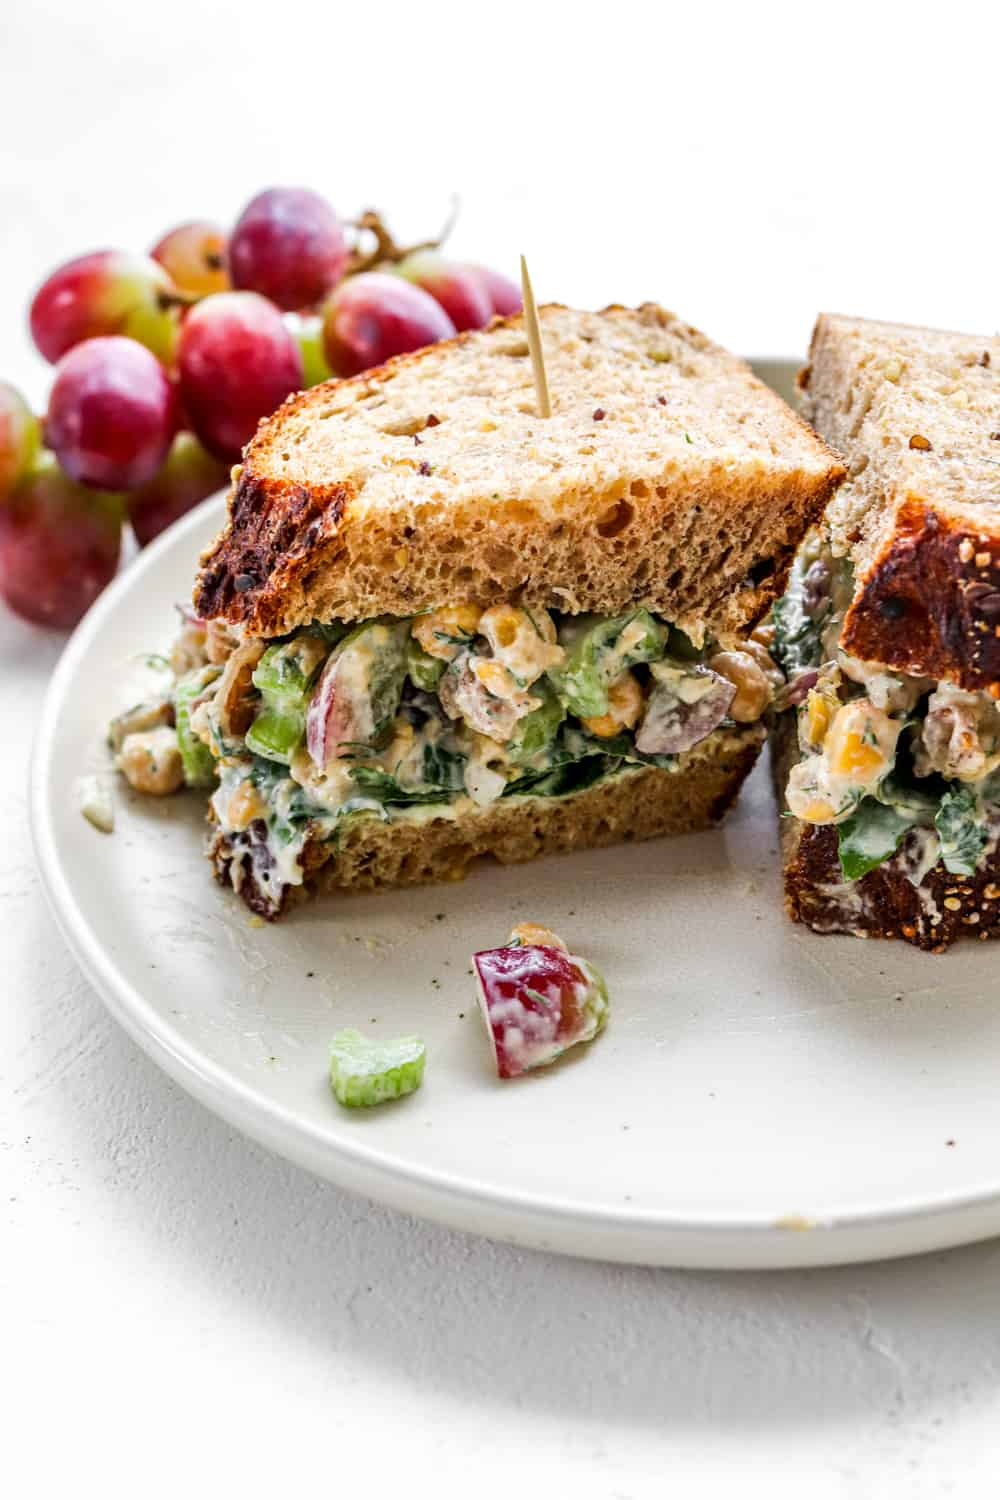 creamy salad in between whole wheat slices of bread on a plate